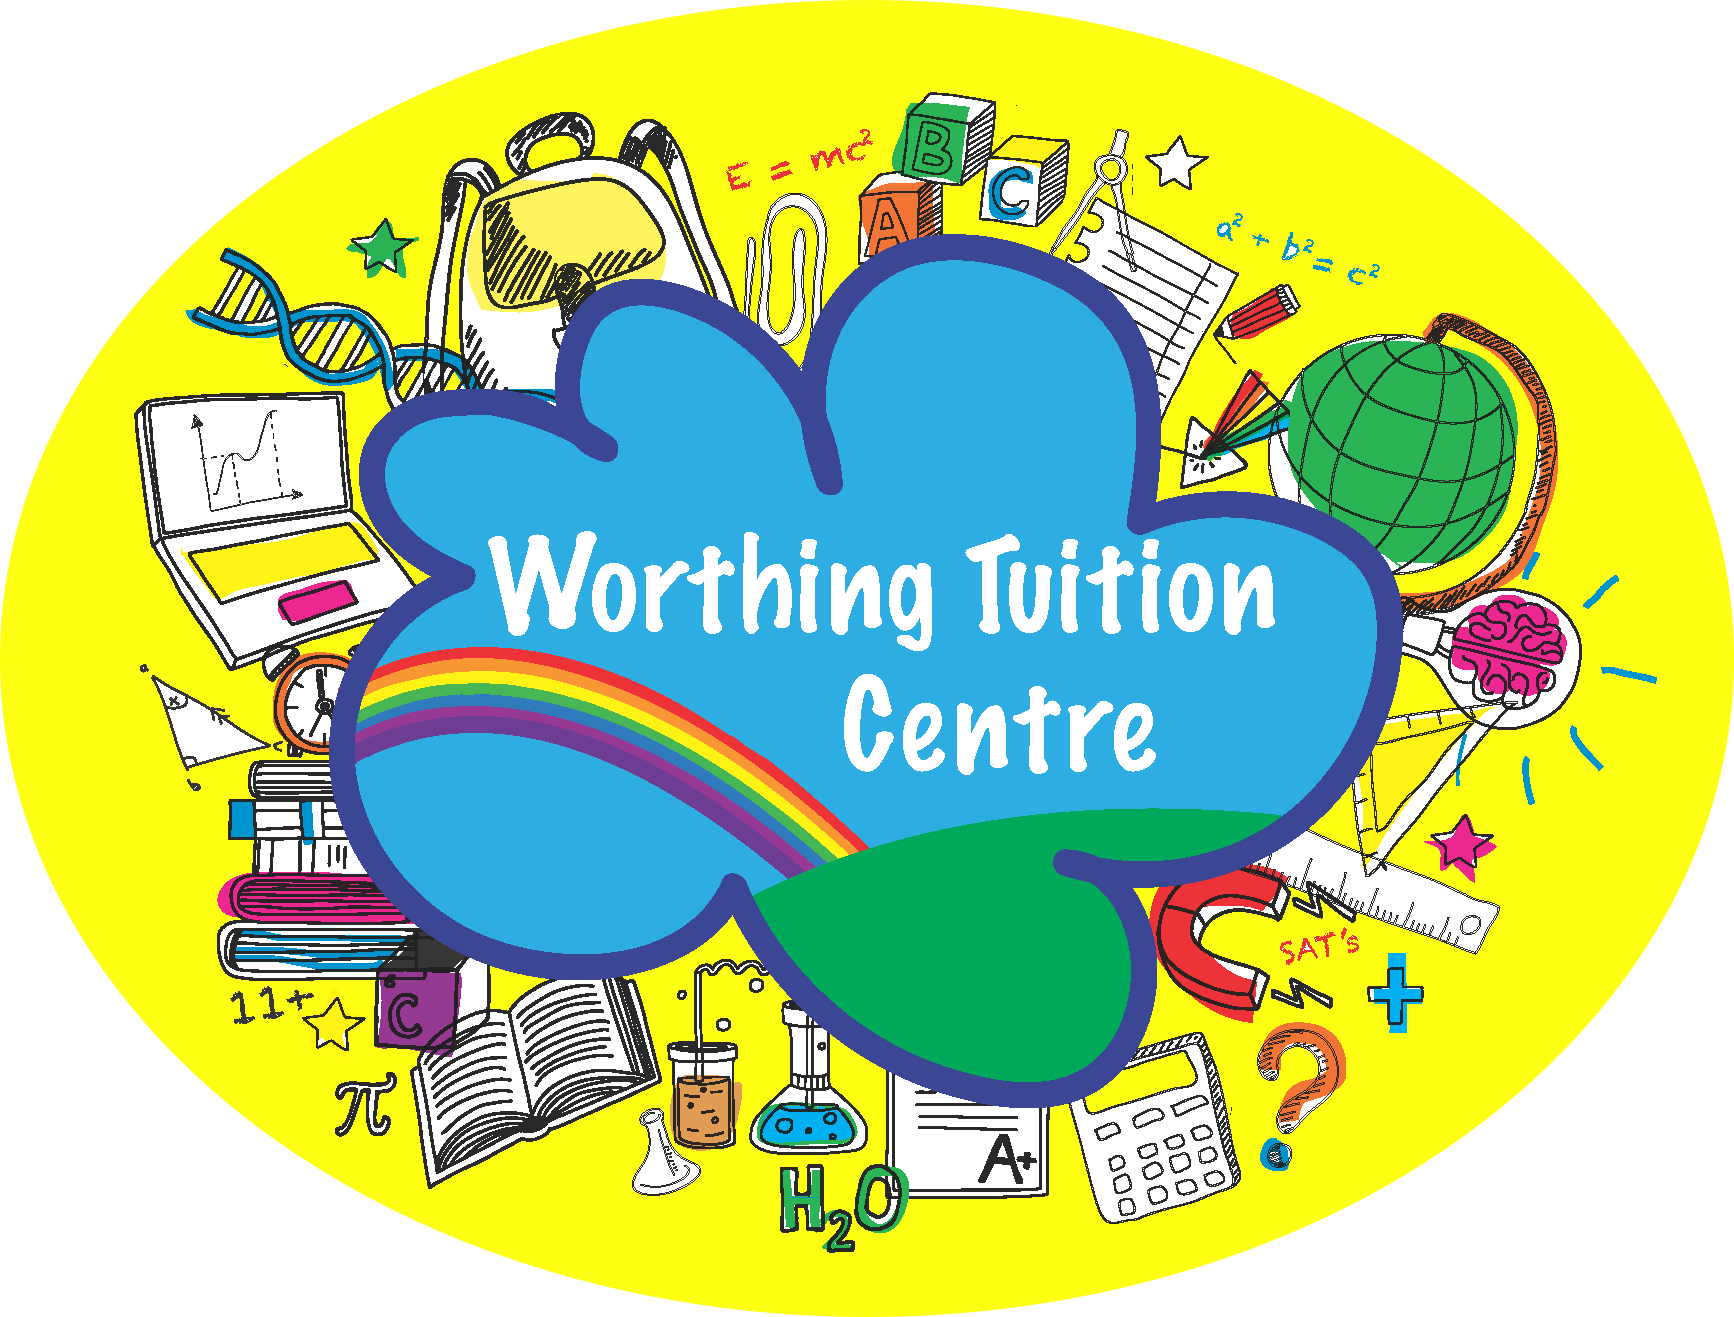 Knowledge clipart tuition center. Worthing centre